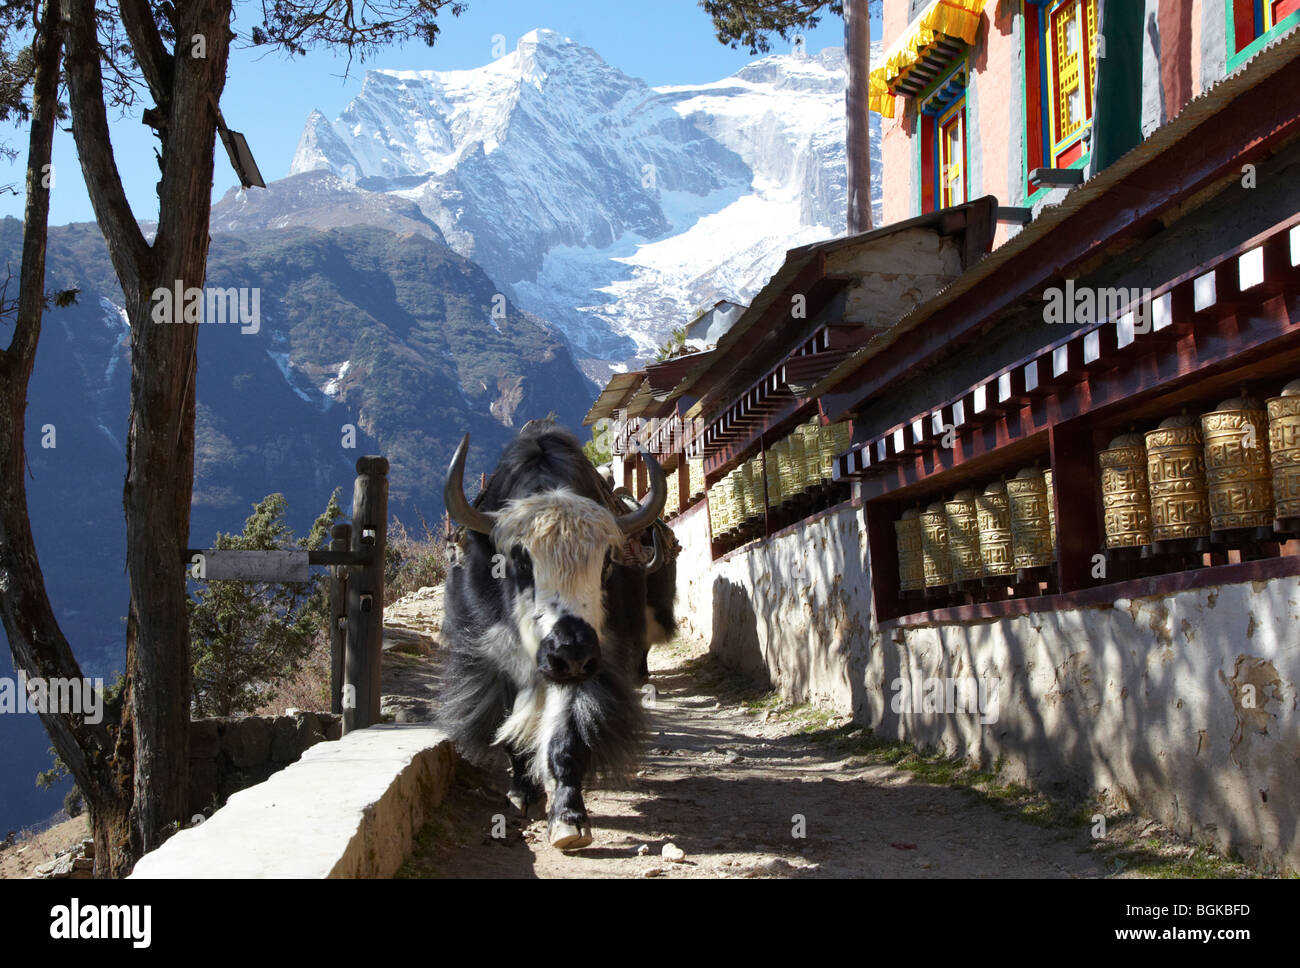 Yaks Coming Down Into Namche Bazaar Passed The Monastery Himalayas Khumbu Region Nepal Asia - Stock Image